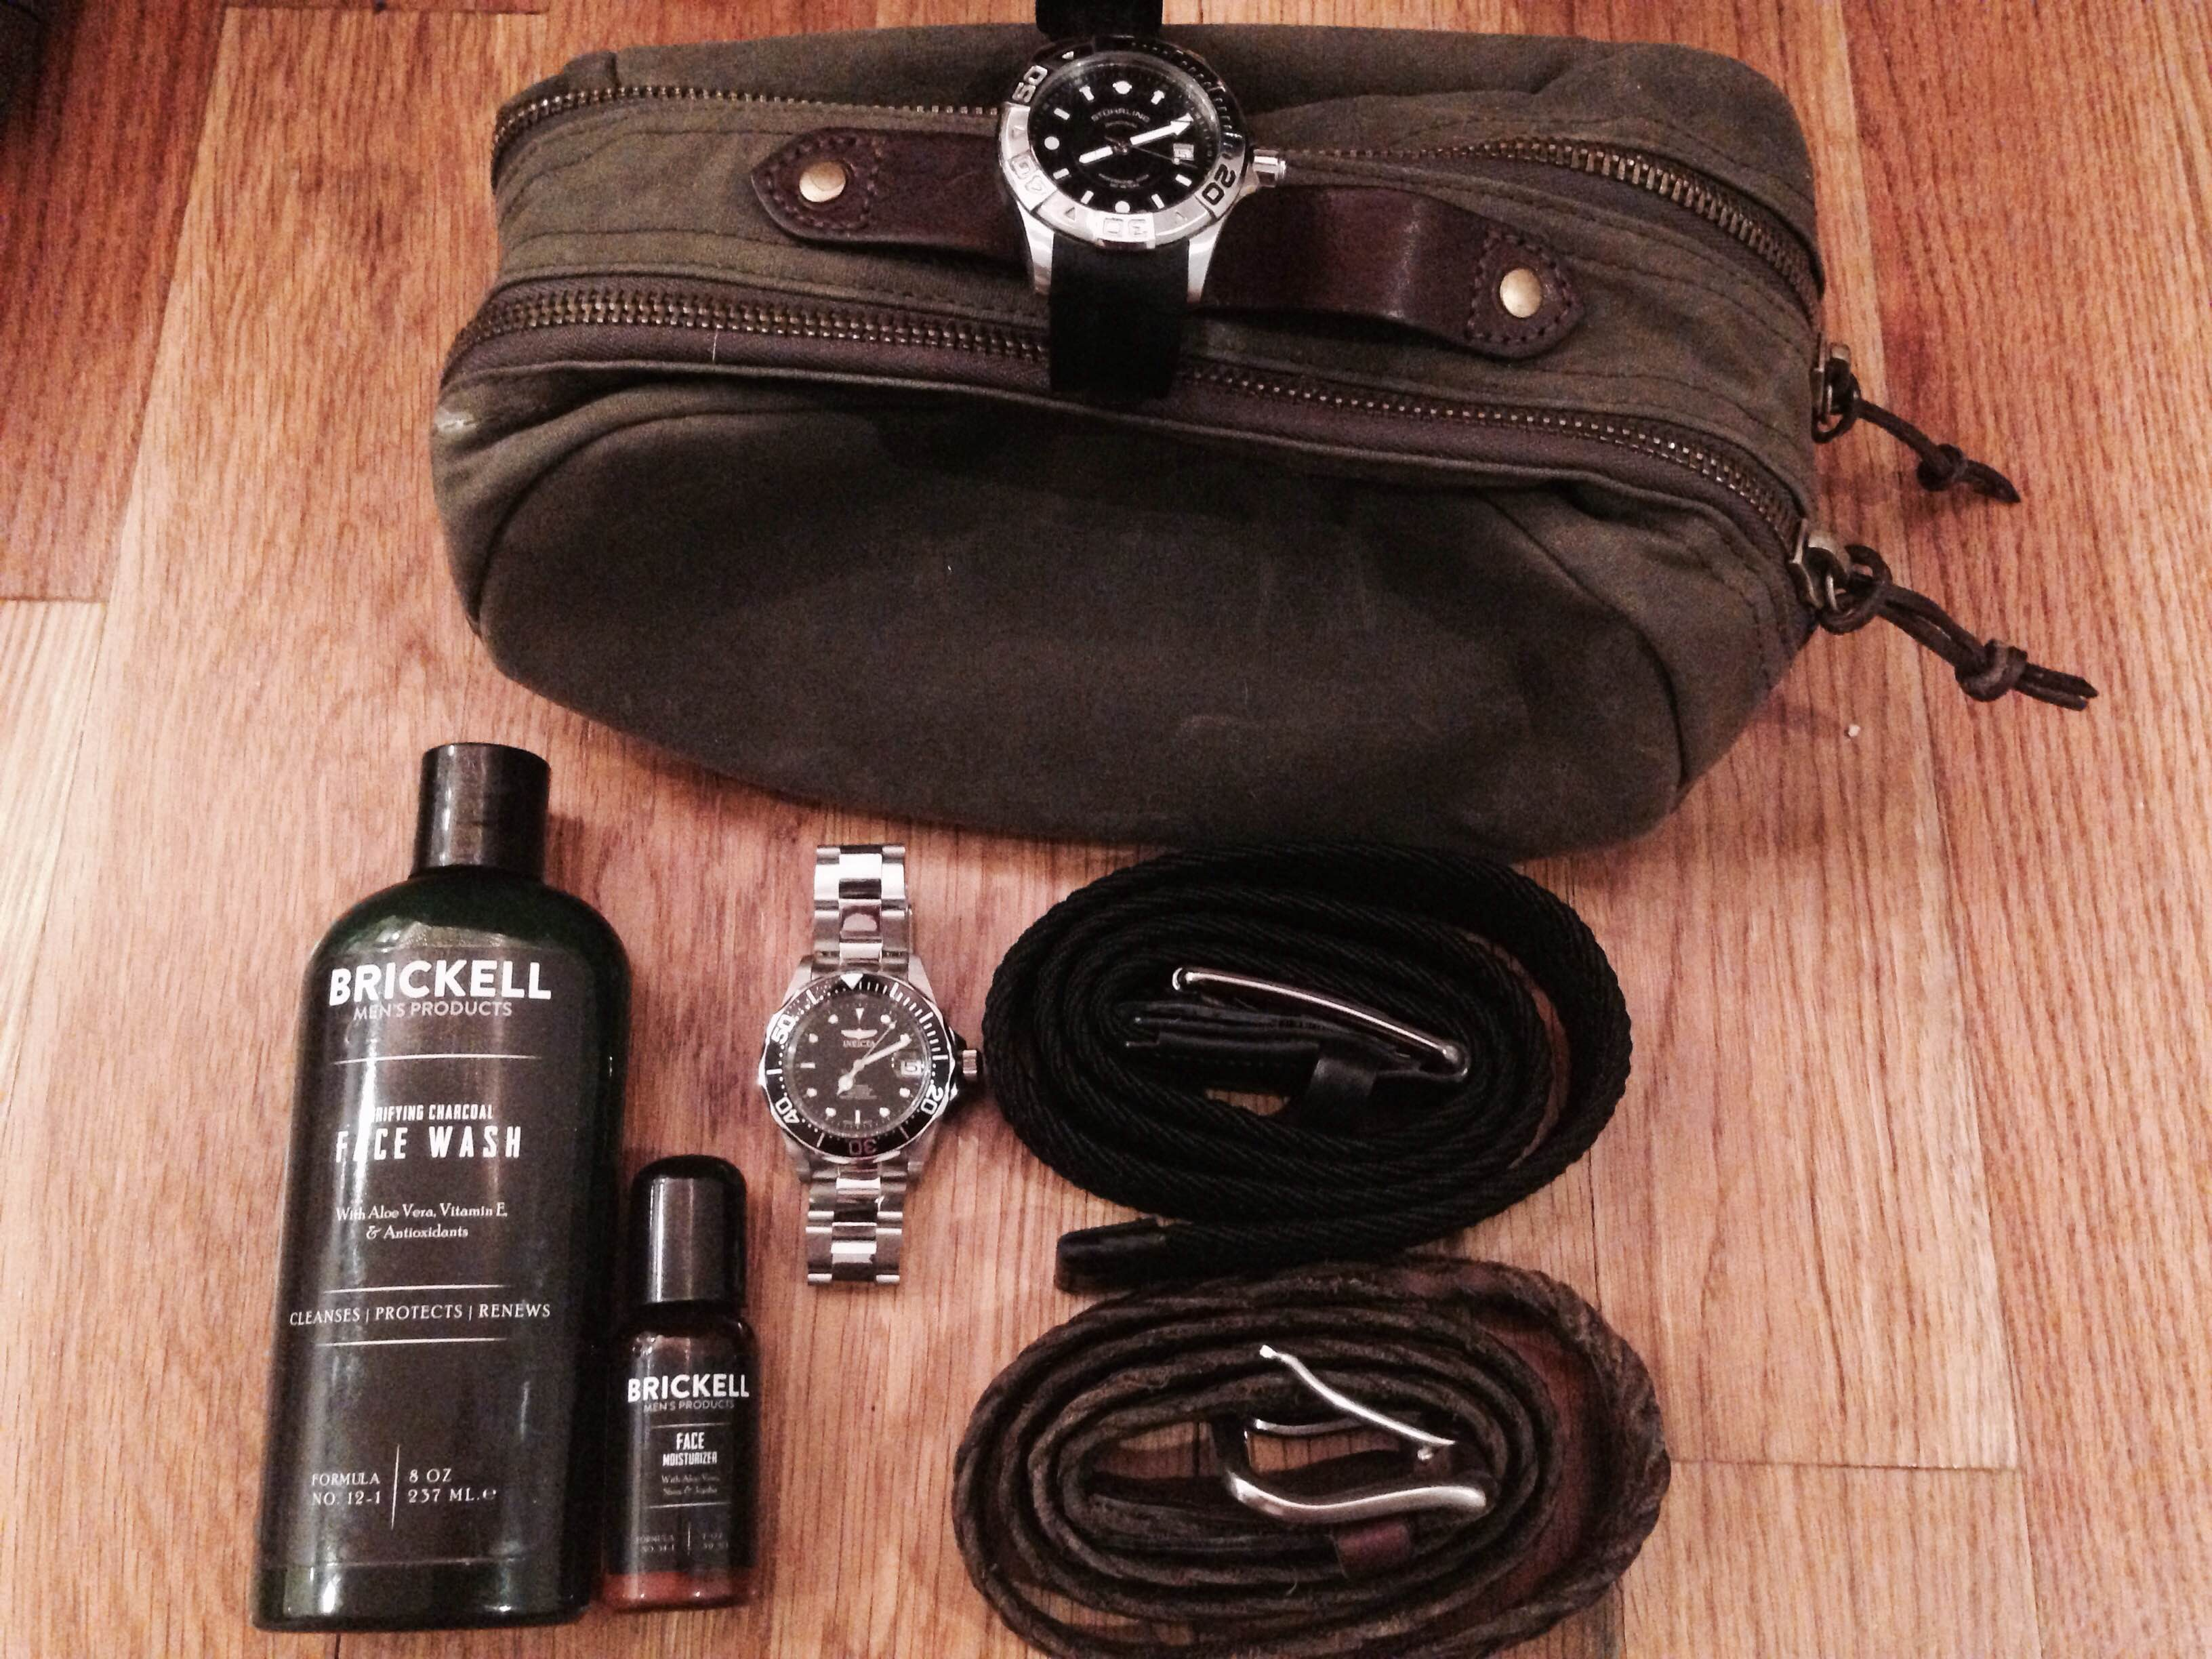 Mens leather gloves target - The Key Accessories For This Trip Pictured J Crew Factory Dopp Kit